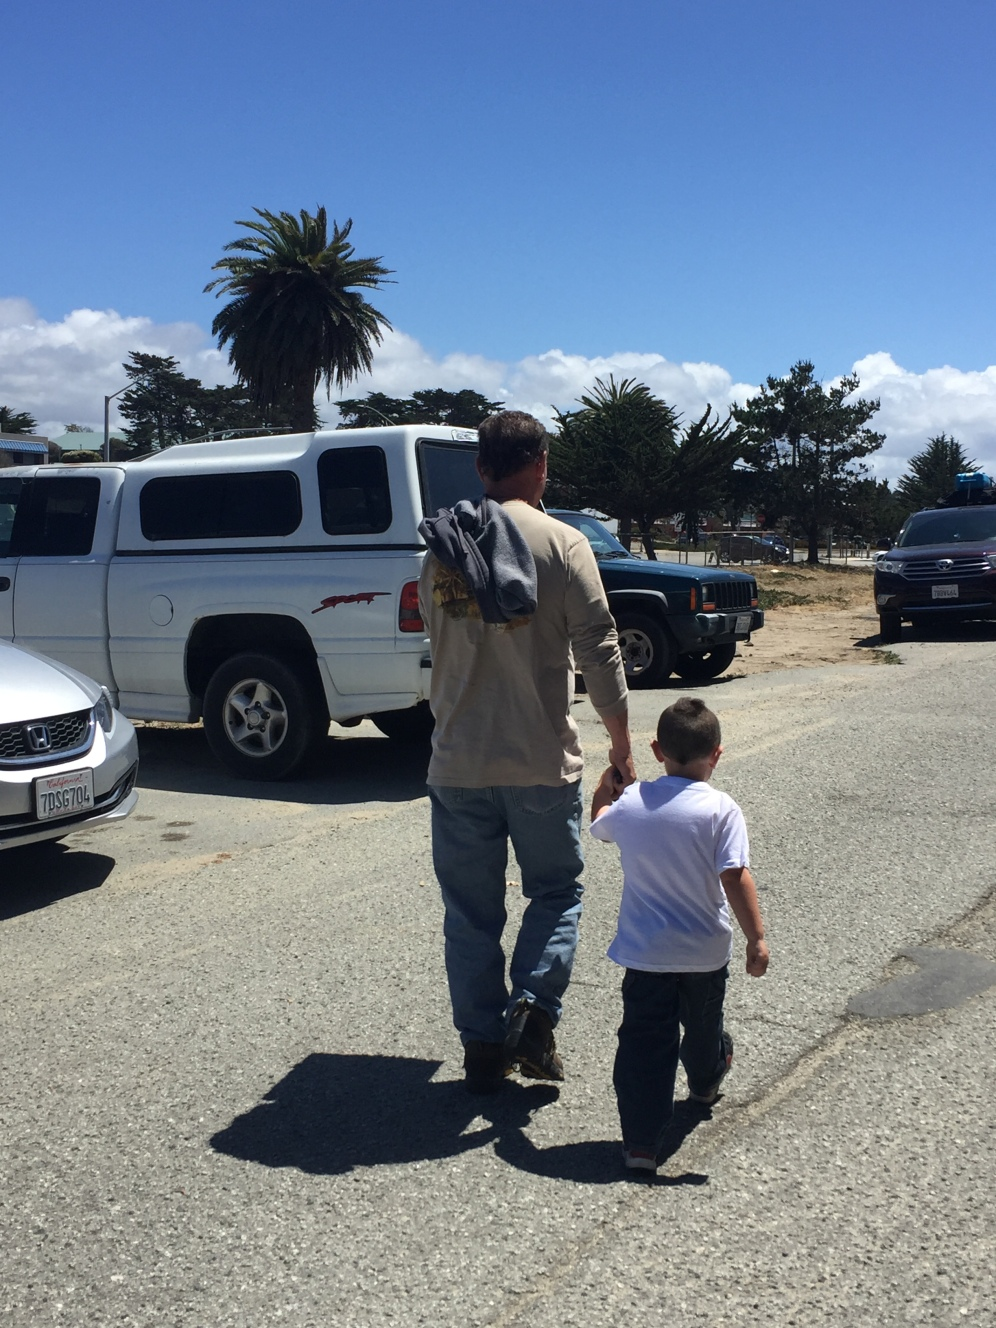 My great nephew took my husband's hand while walking to the car...So Sweet!